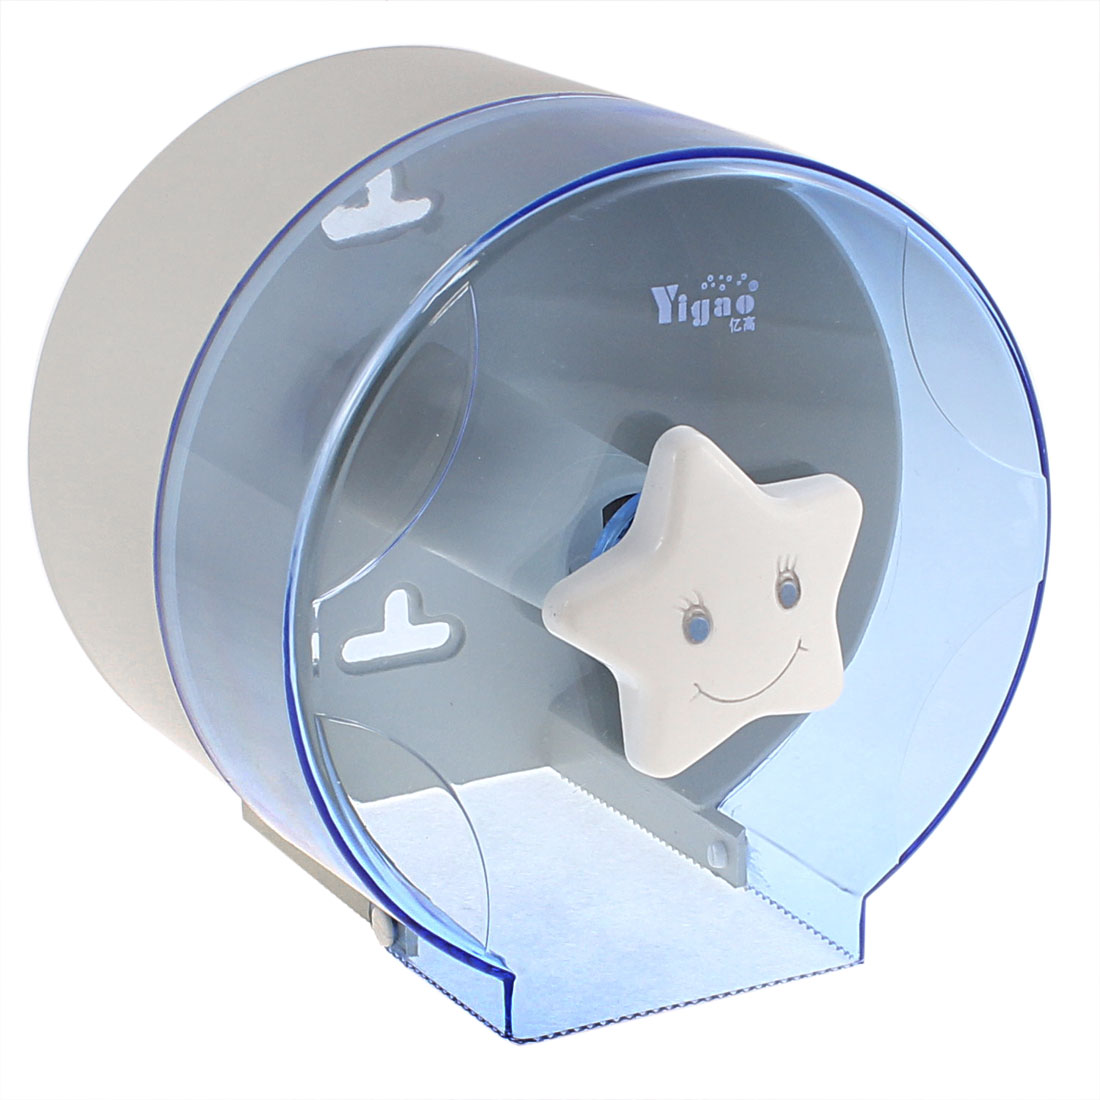 Cylindrical Design Toilet Paper Rack Tissue Holder Box Case Clear Blue